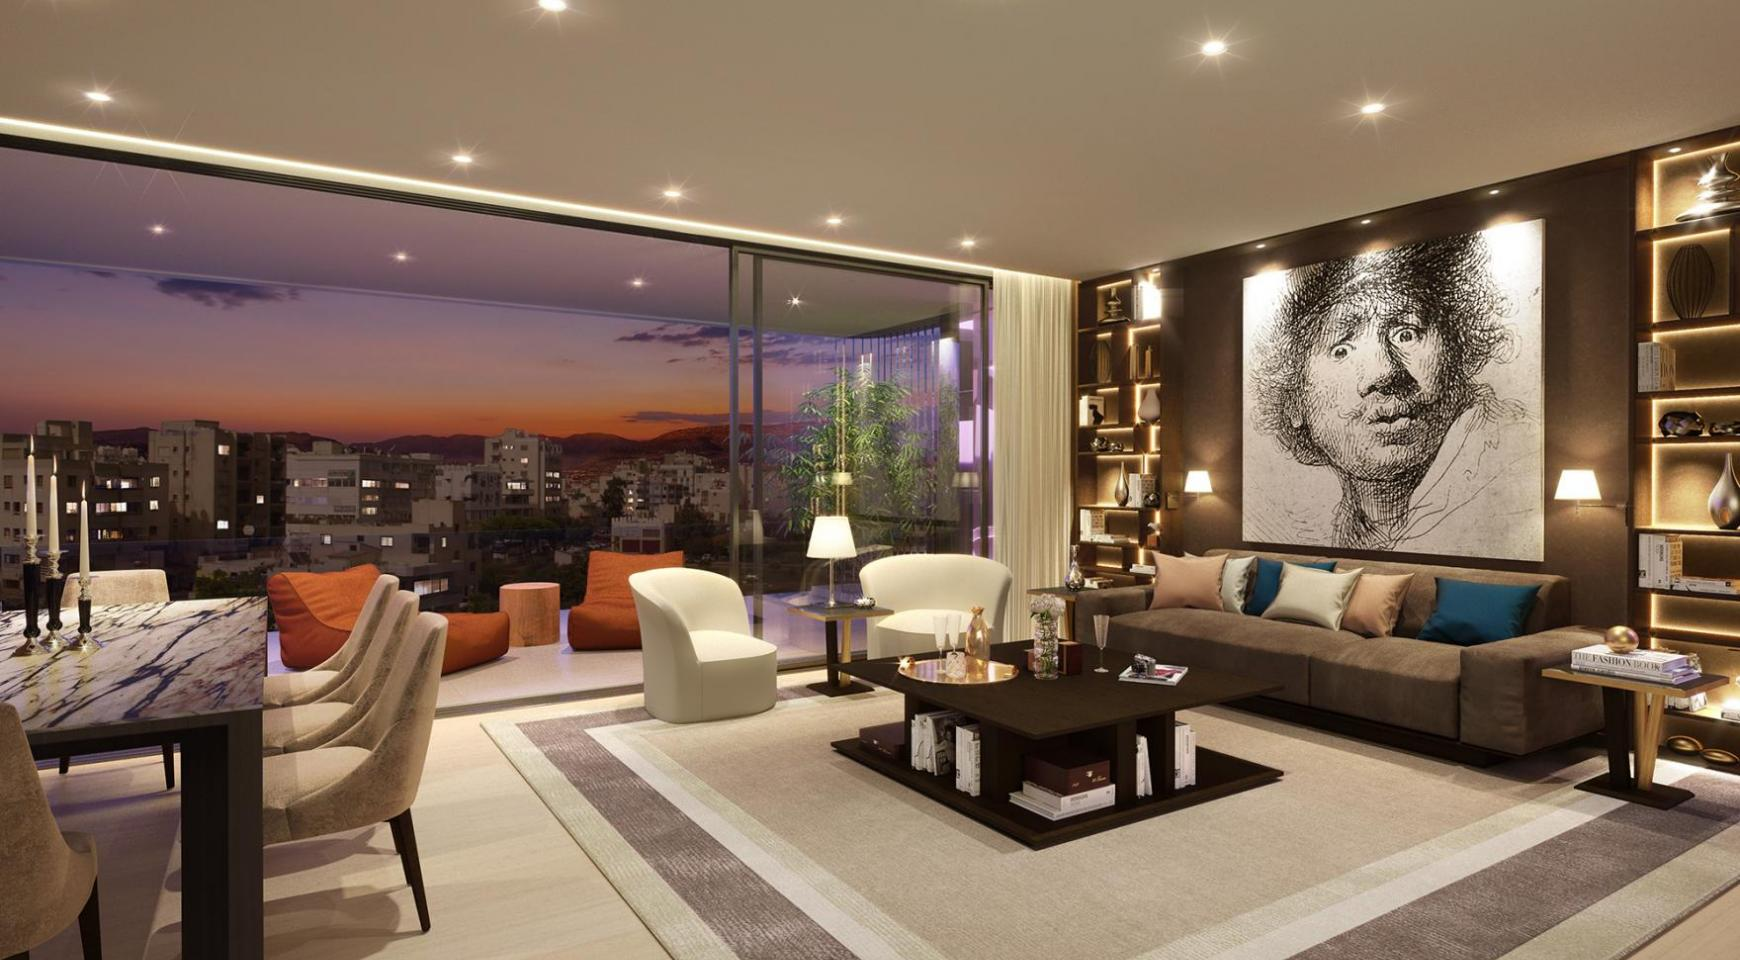 New 3 Bedroom Apartment in a Contemporary Building in City Centre - 6